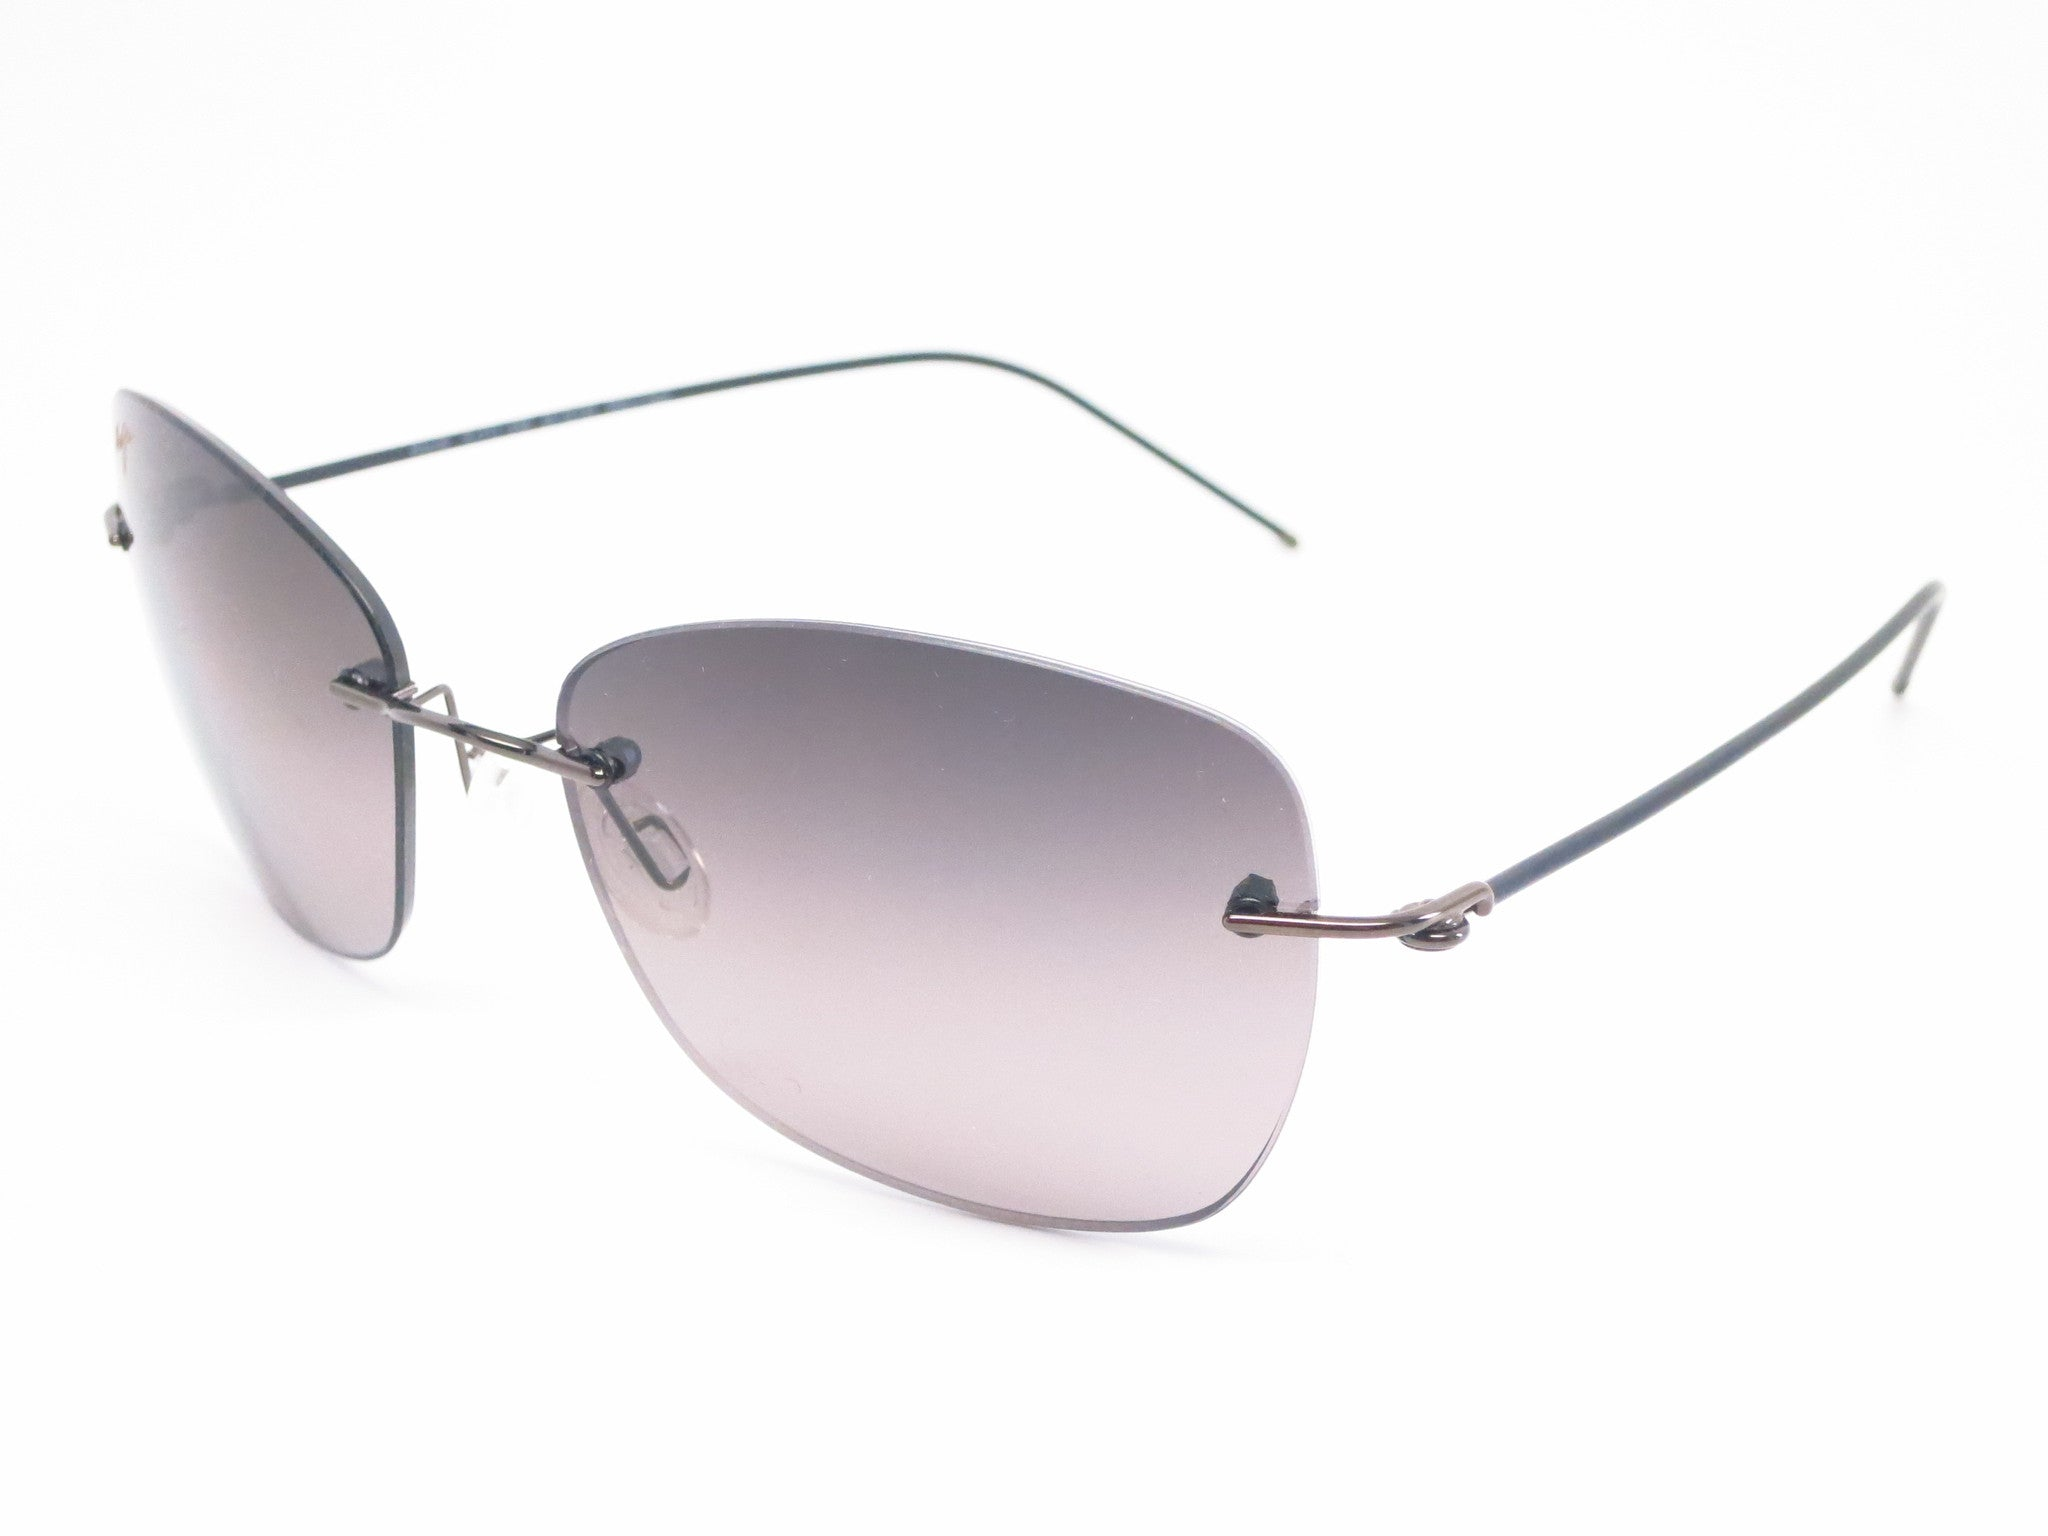 d1b04da69117 Maui Jim Apapane MJ GS717-02D Dark Gunmetal/Black sleeve Polarized  Sunglasses - Eye ...